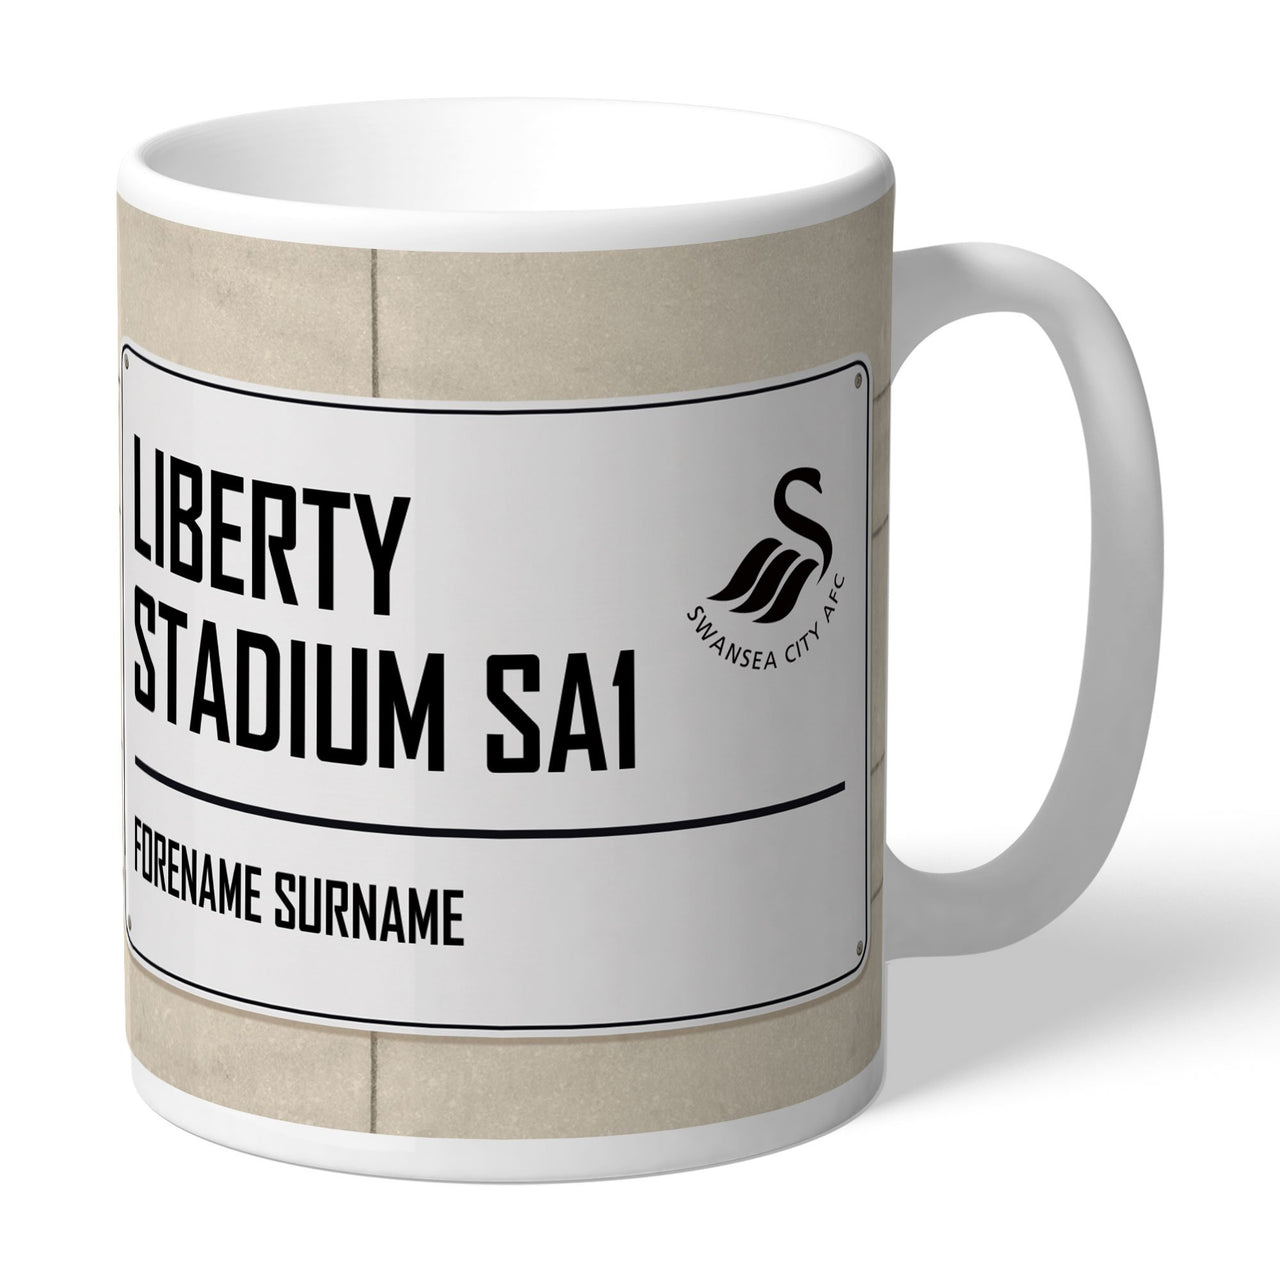 Swansea City AFC Street Sign Mugs, Gifts